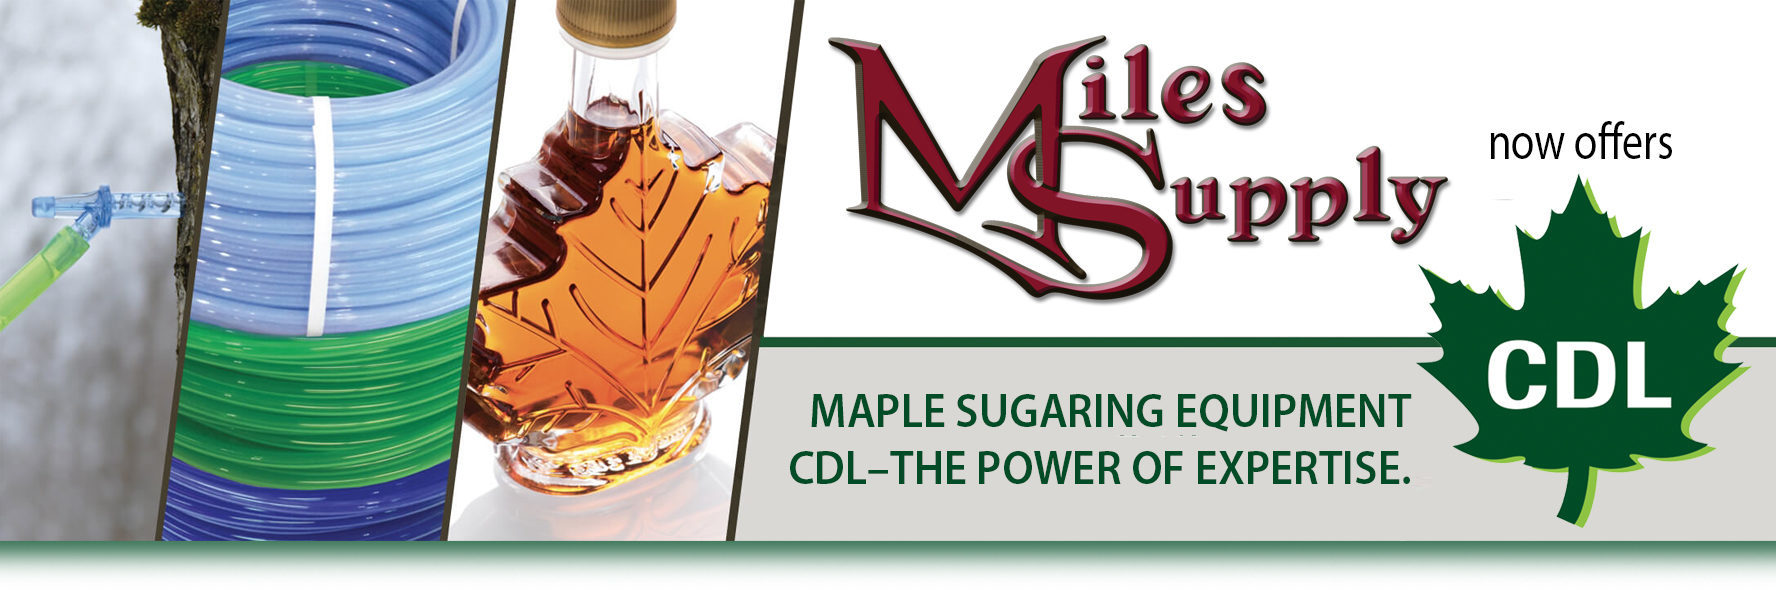 Maple Supplies Ad CDL